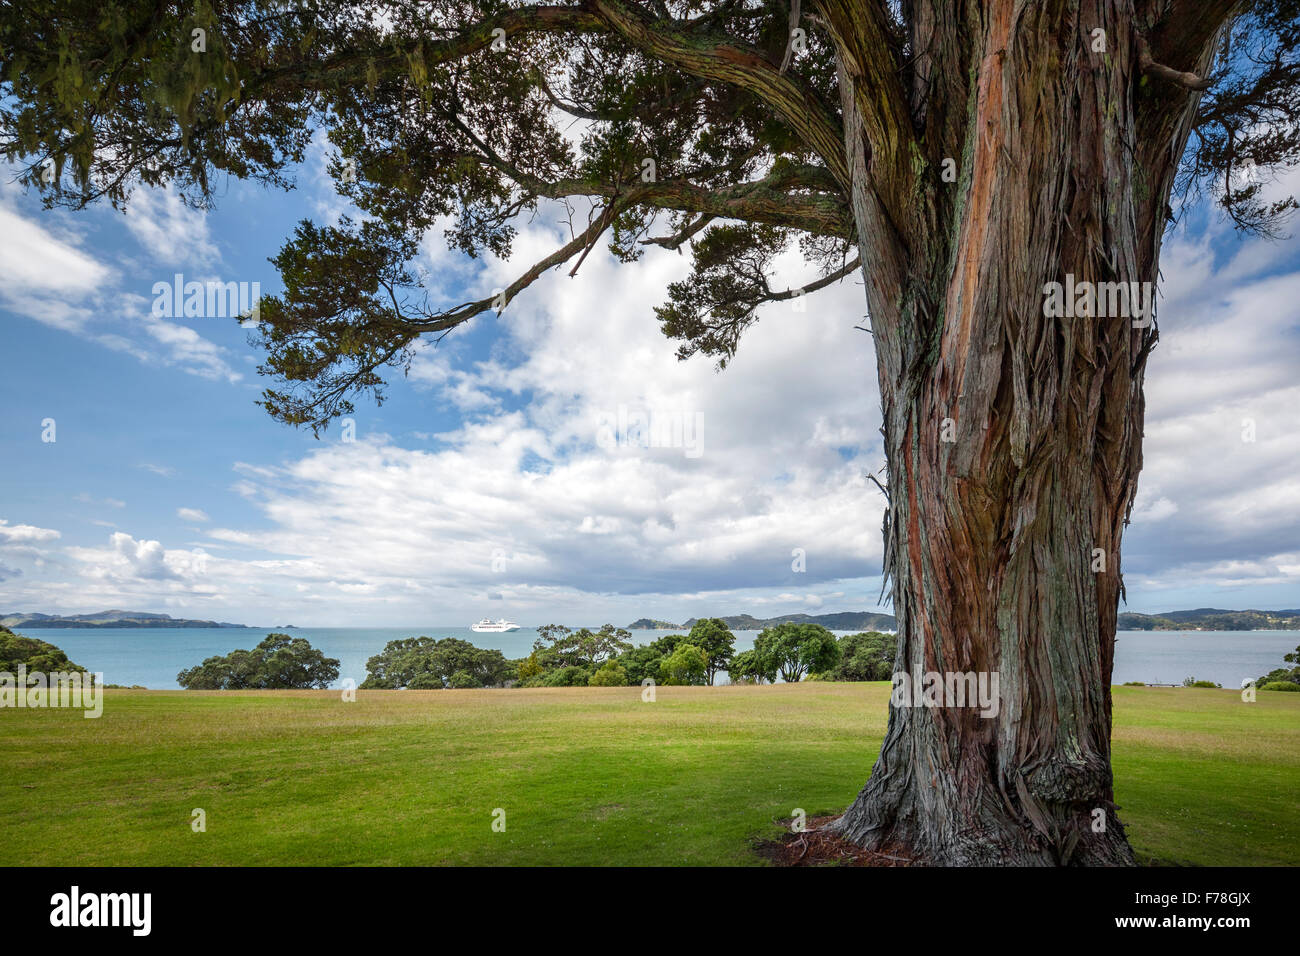 New Zealand. Waitangi Treaty Grounds and The Bay of Islands. Cruise ship luxury cruise liner in the bay. - Stock Image